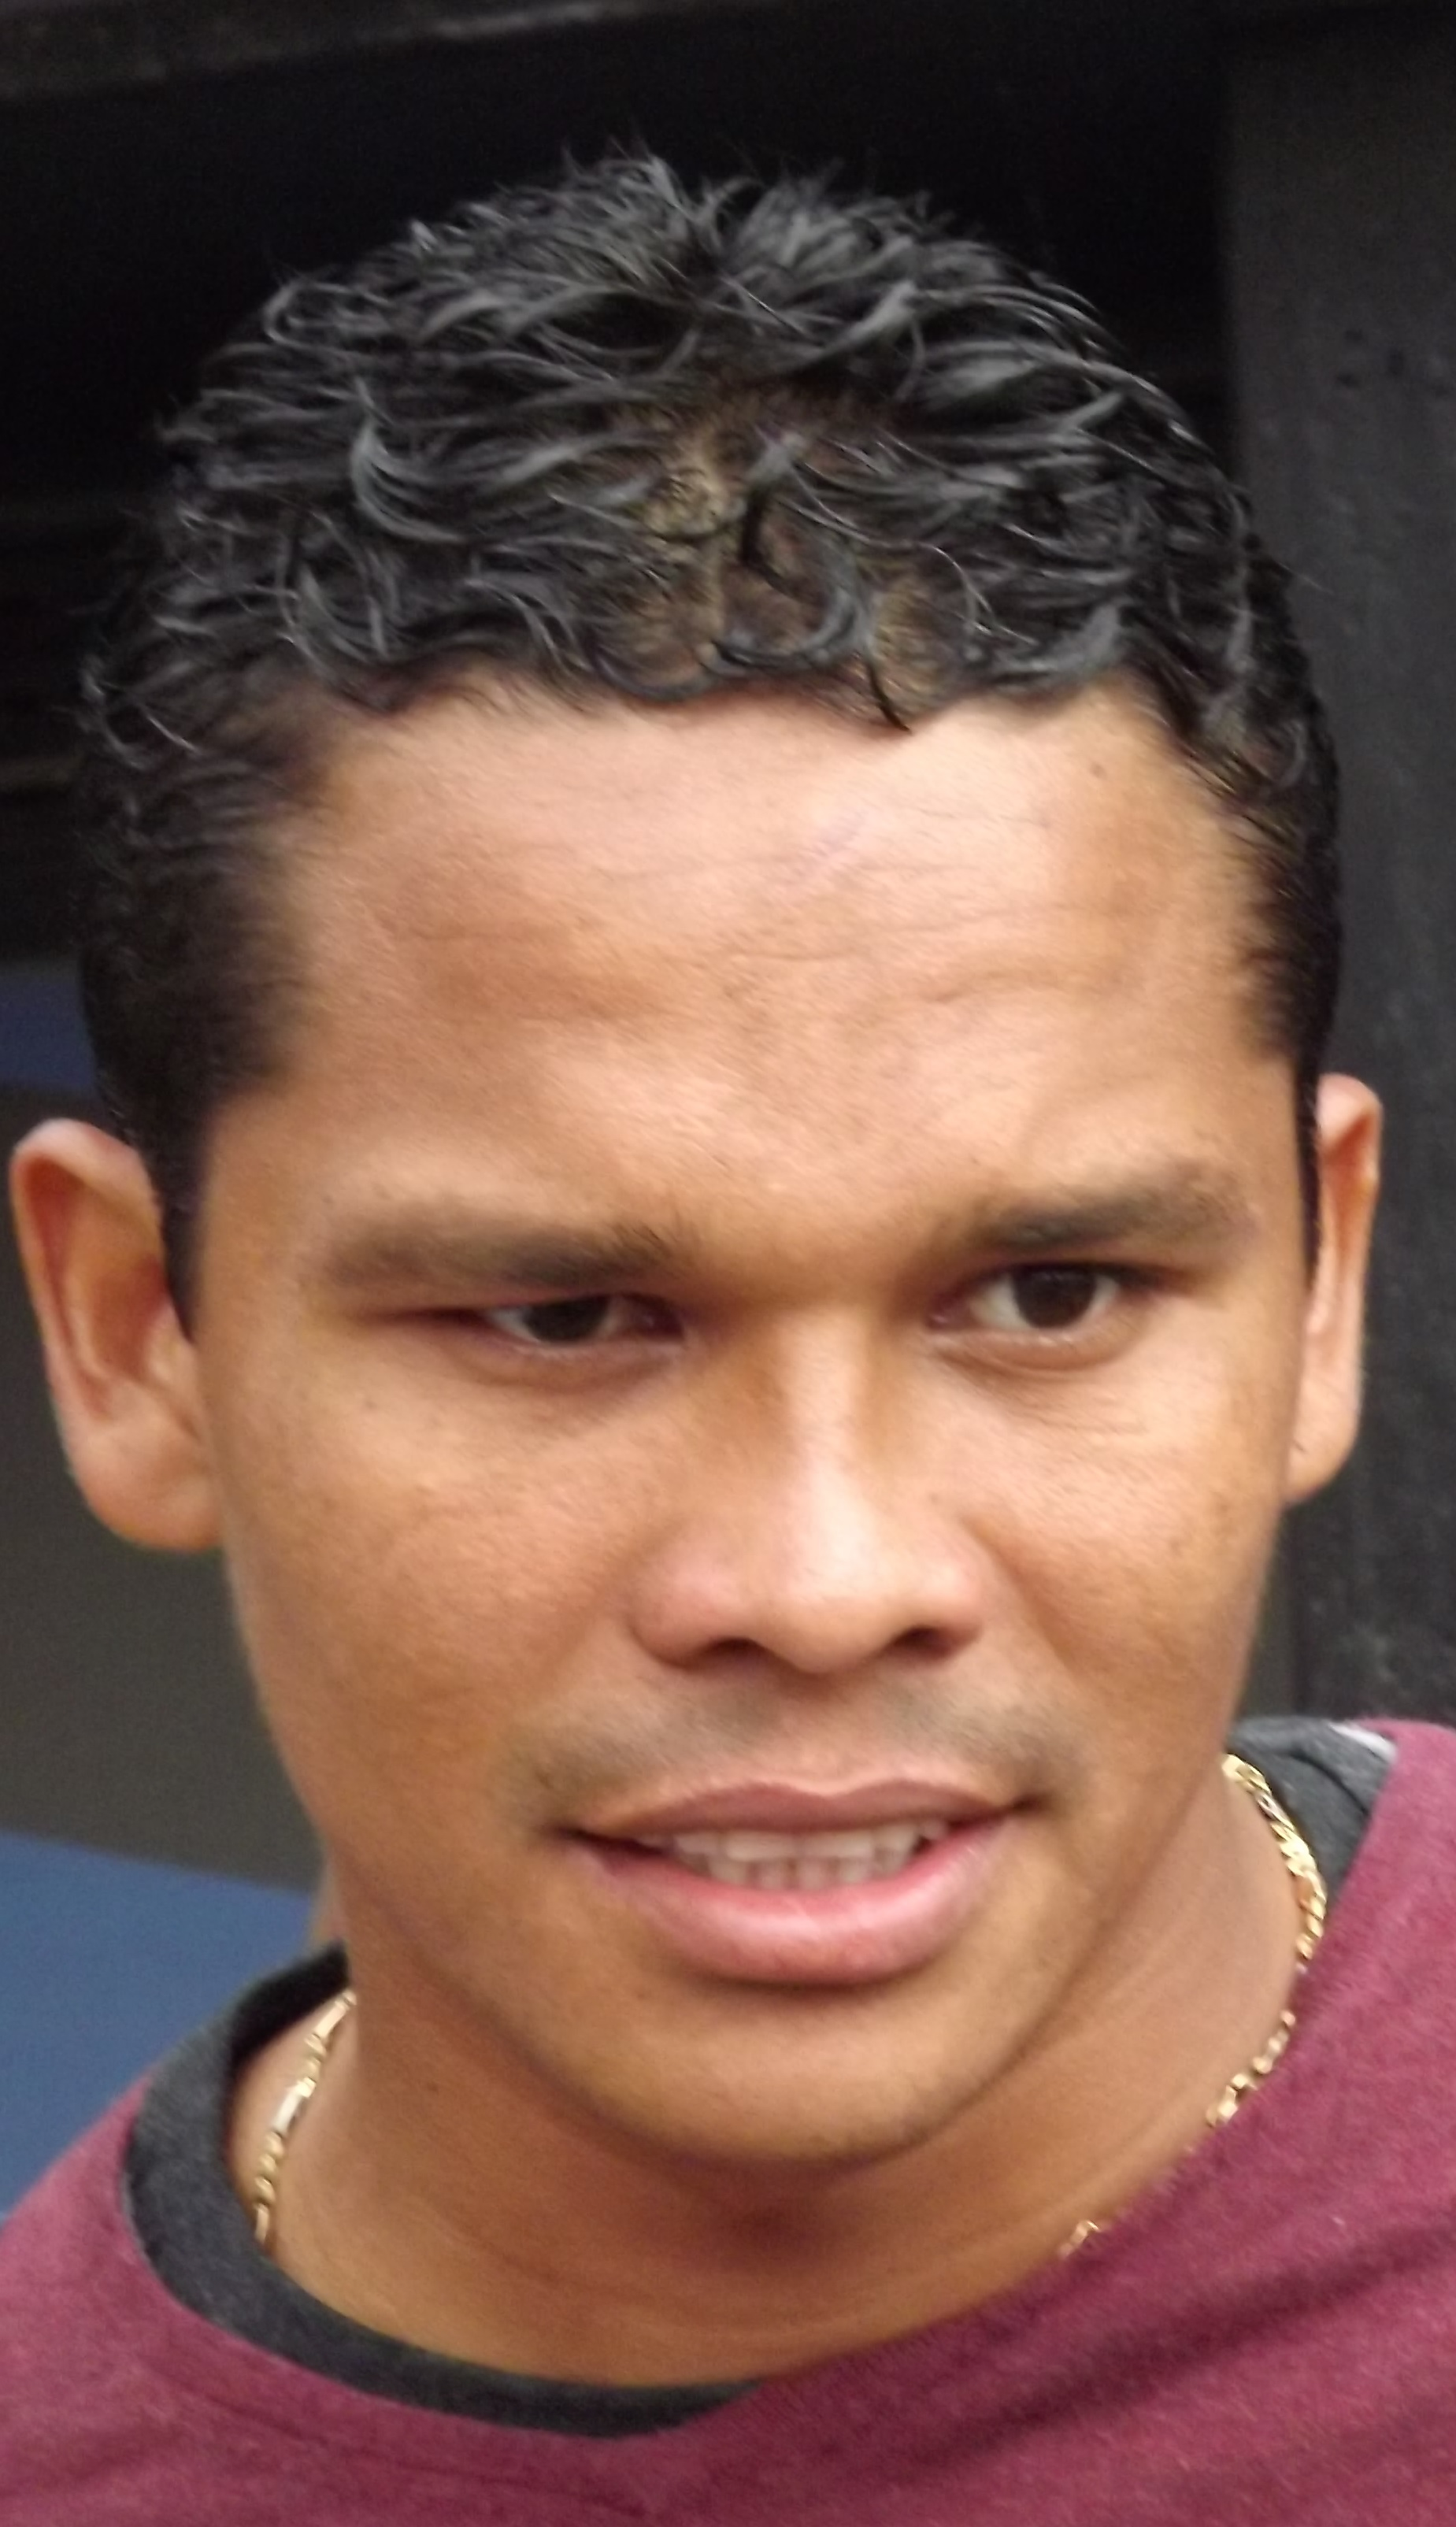 The 31-year old son of father (?) and mother(?) Carlos Bacca in 2018 photo. Carlos Bacca earned a 8.4 million dollar salary - leaving the net worth at 12.8 million in 2018